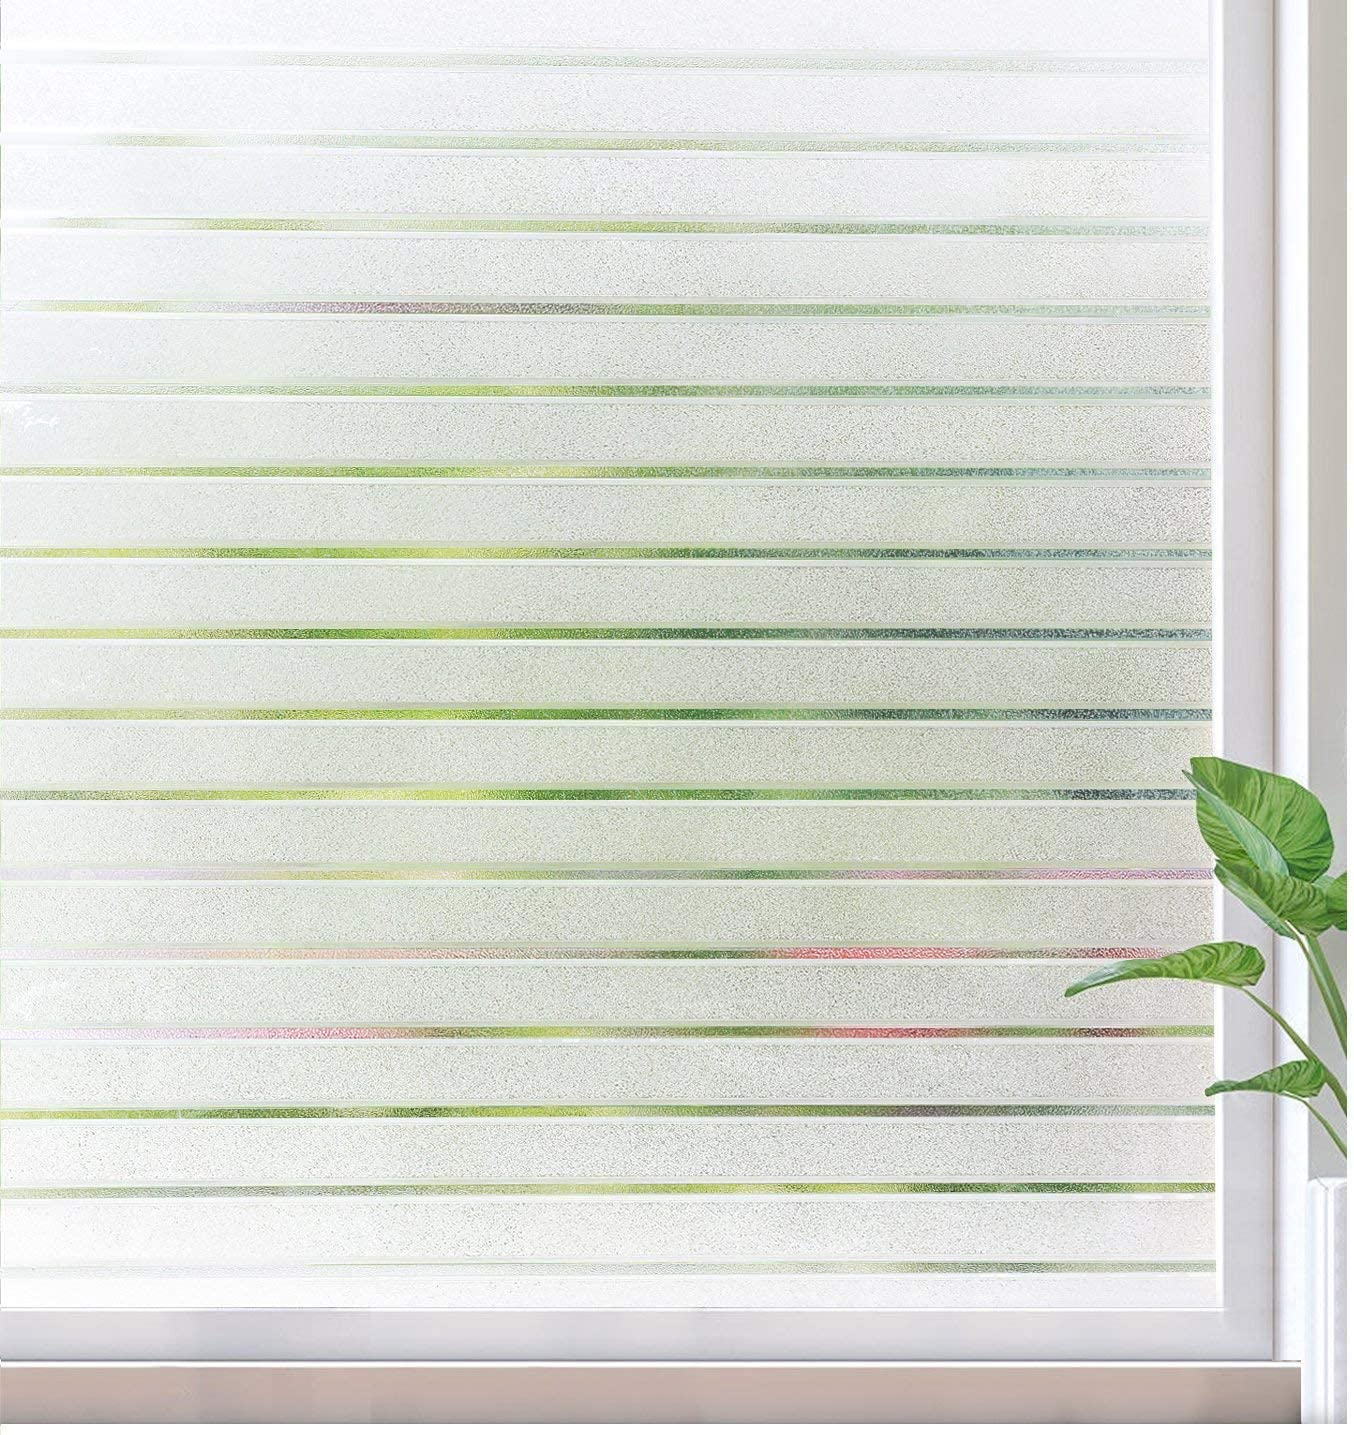 rabbitgoo Window Film Static Cling Decorative Privacy Film Non Adhesive Window Sticker UV Protection Window Covering Light Blocking Film, Removable & Reusable, Stripe Patterns, 35.4 x 78.7 inches